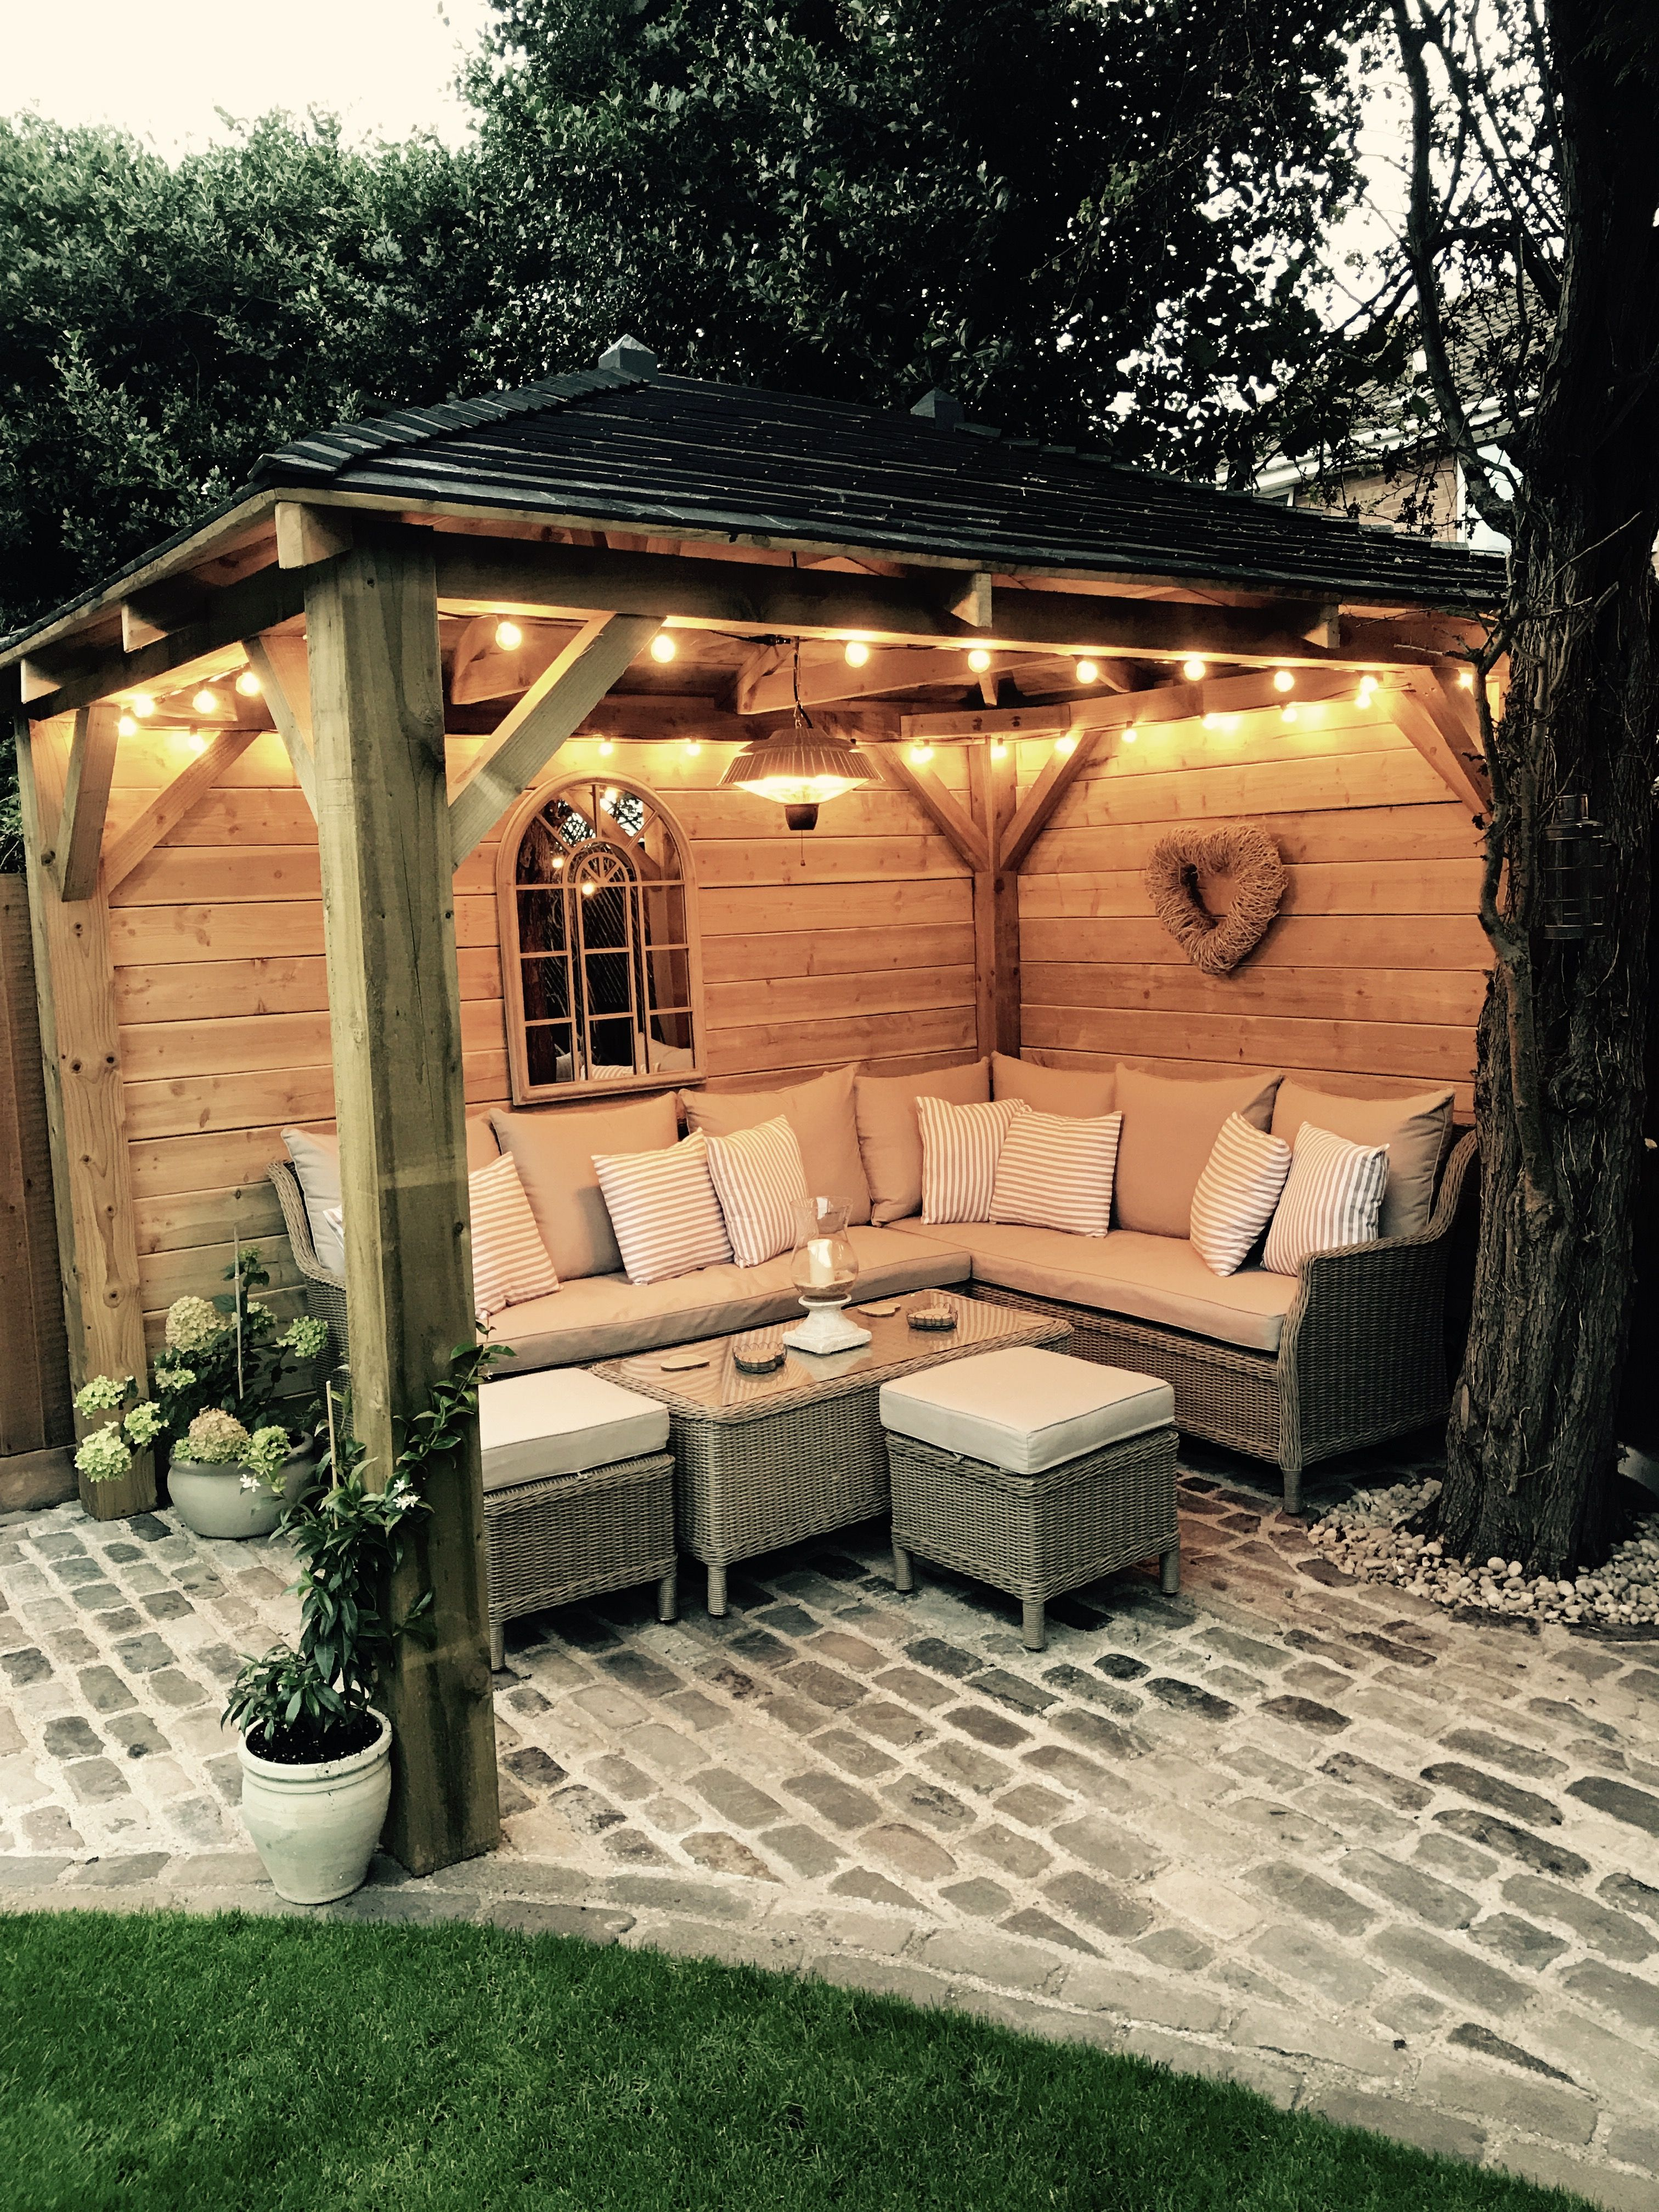 Homemade Wooden Gazebo Garden Room Ideas Backyard Patio Home